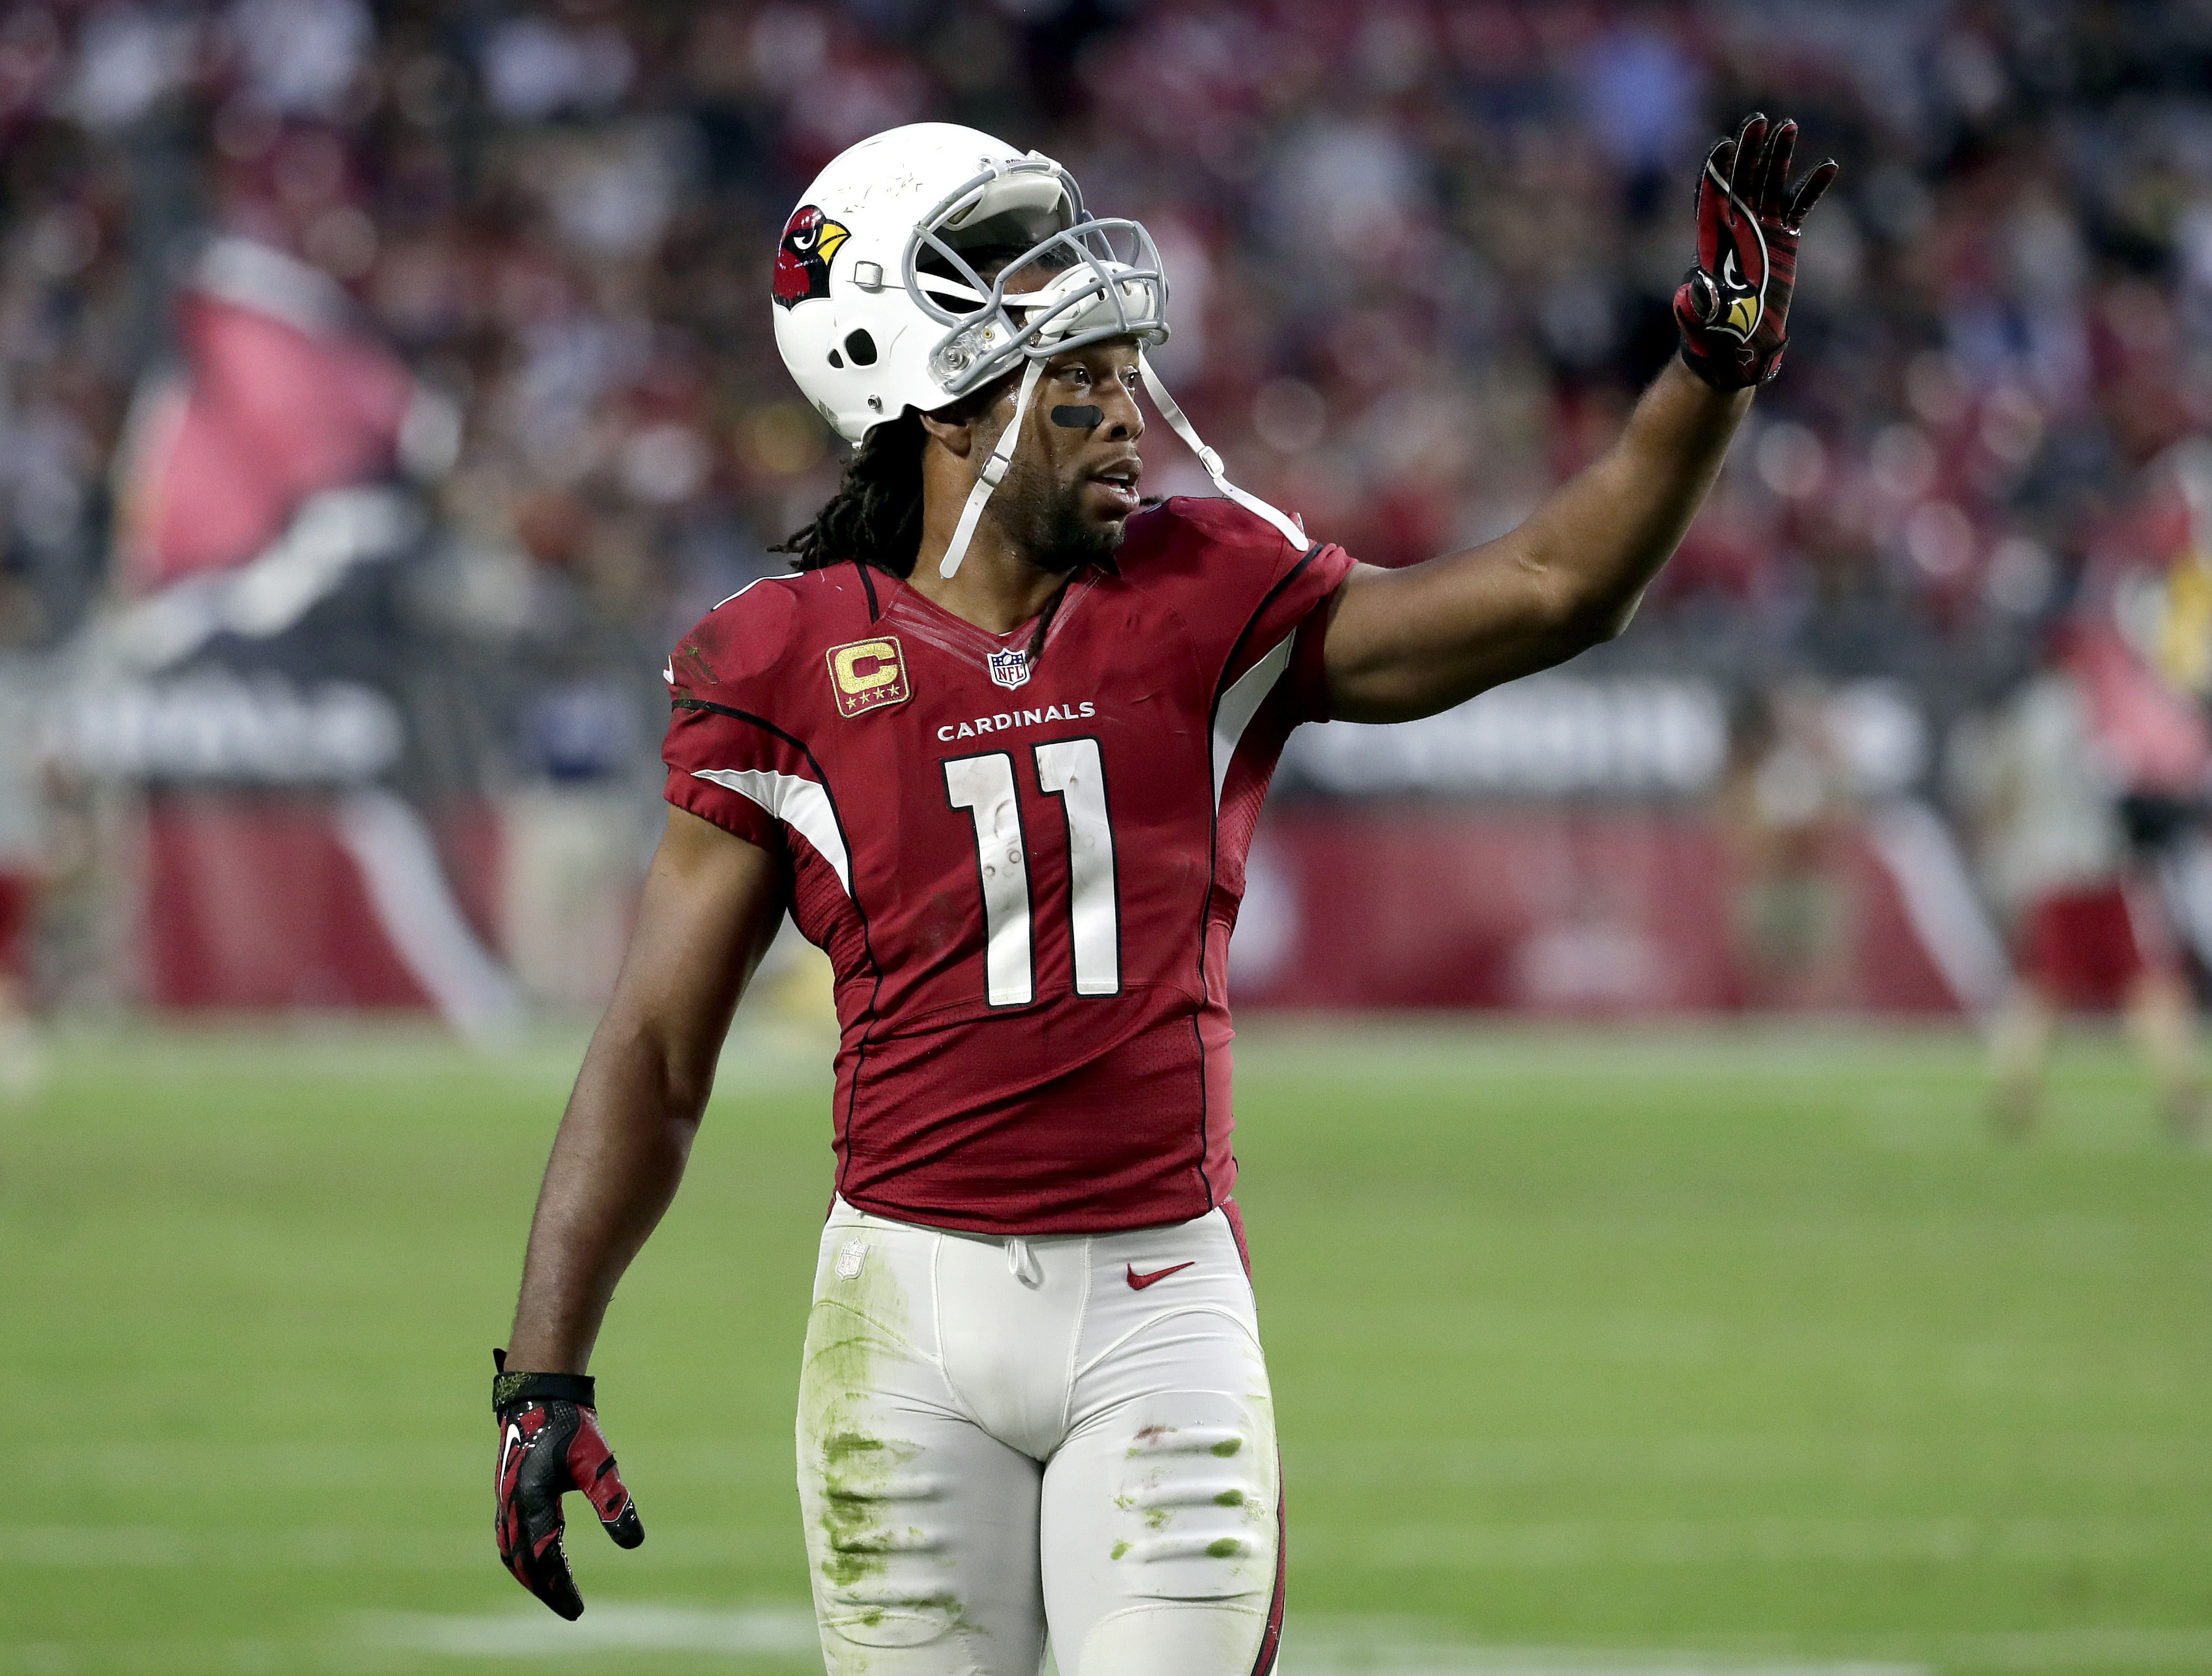 Arizona Cardinals wide receiver Larry Fitzgerald (11) waves during the second half of an NFL football game against the New Orleans Saints , Sunday, Dec. 18, 2016, in Glendale, Ariz. (AP Photo/Rick Scuteri)